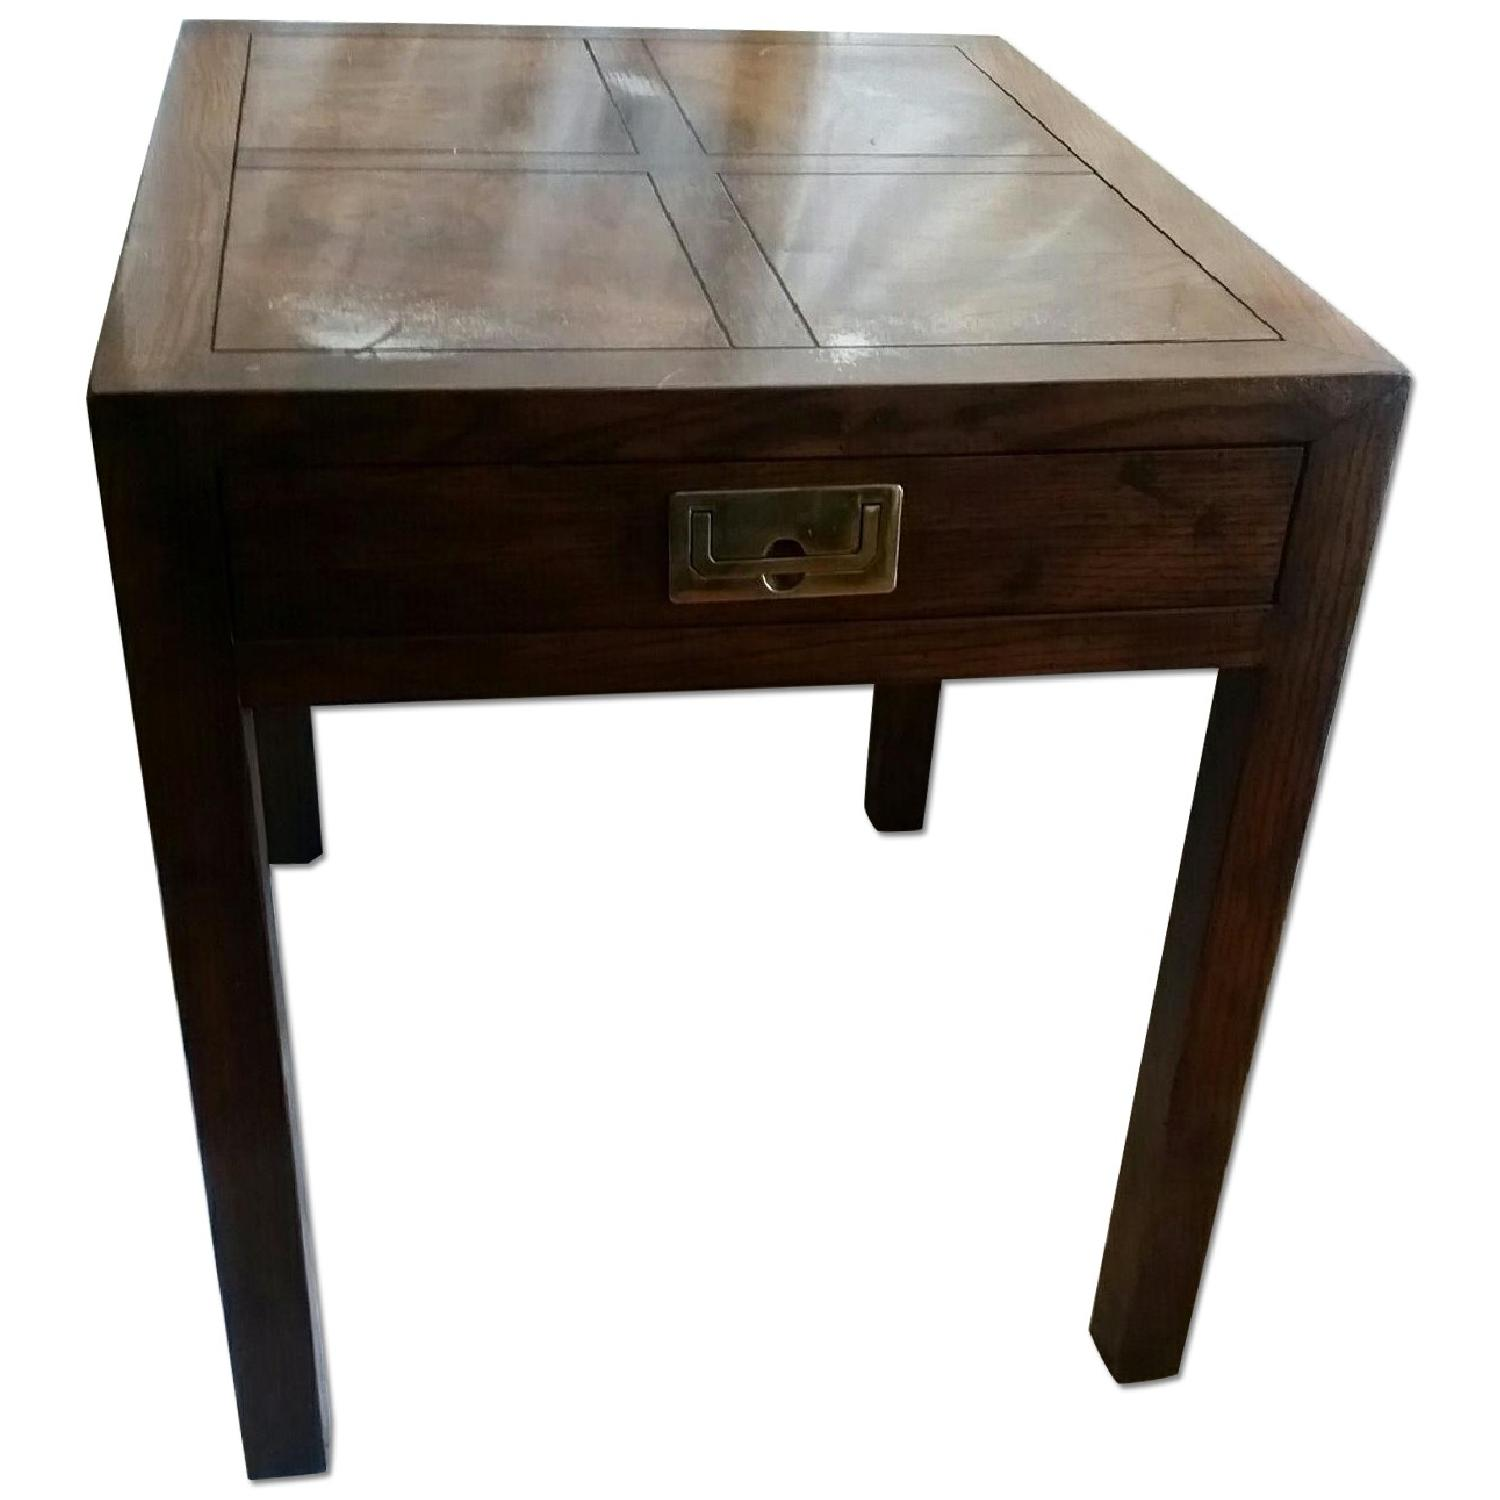 Antique Table w/ Drawer - image-0